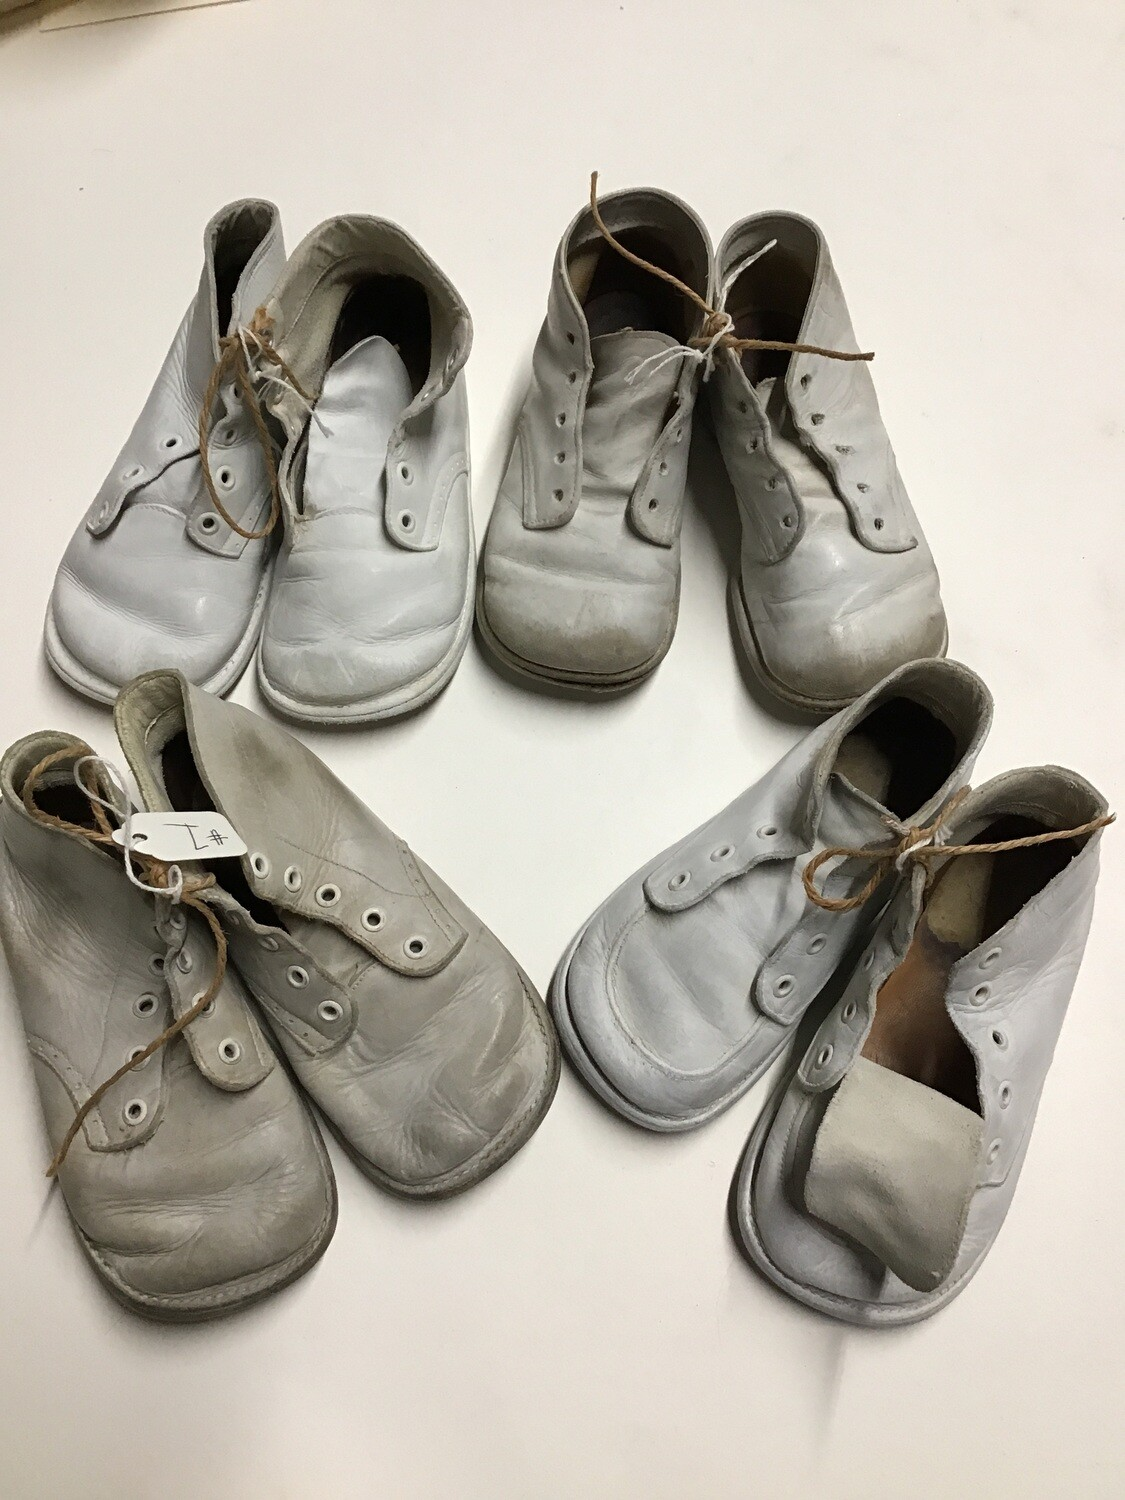 Vintage Toddler Shoes - 4 Pairs- For Art